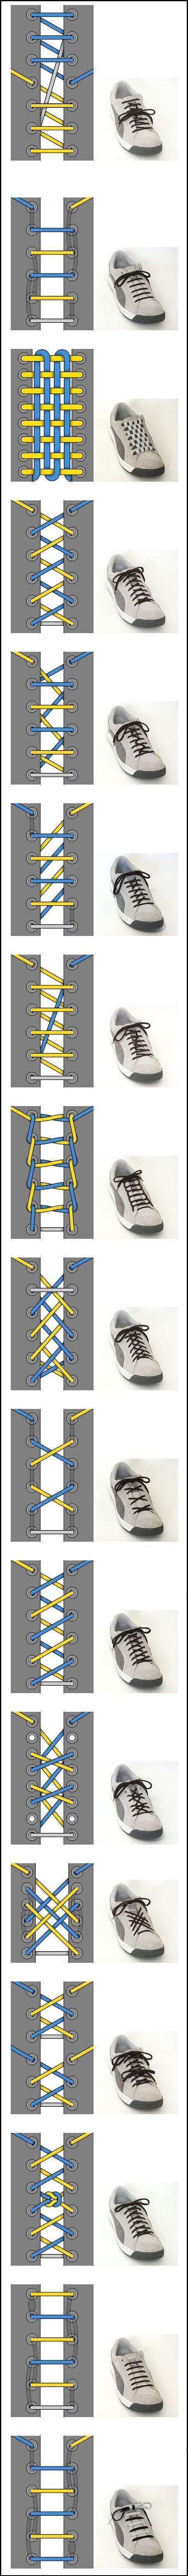 cool ways to lace your tennis